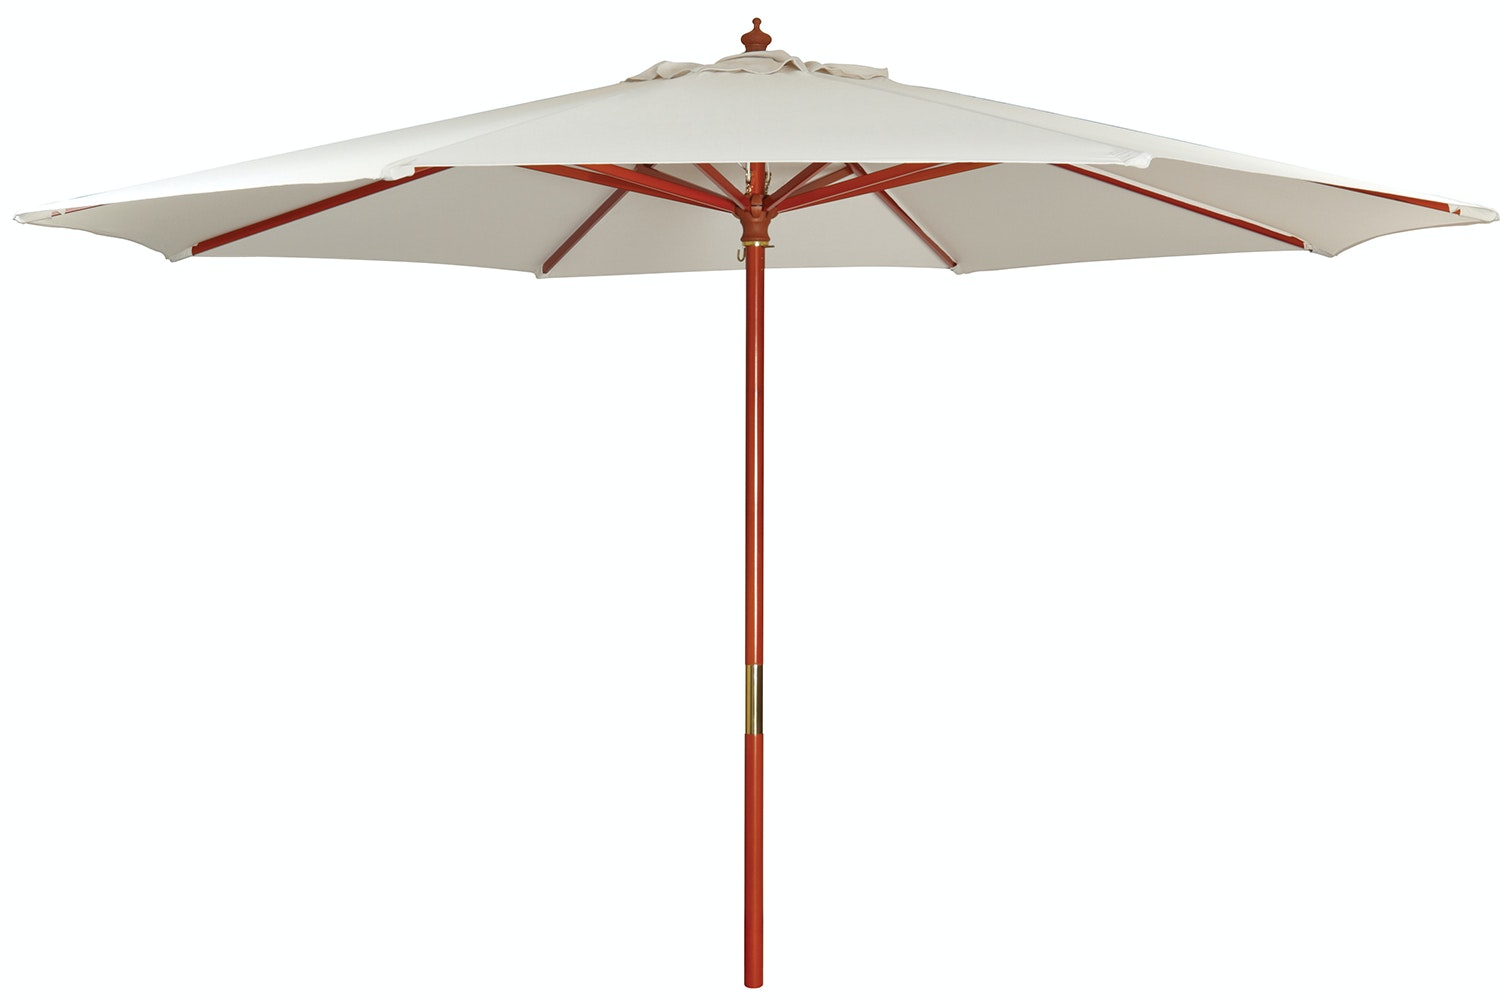 Kosmo 3.5m Natural Outdoor Umbrella -Natural - Peros